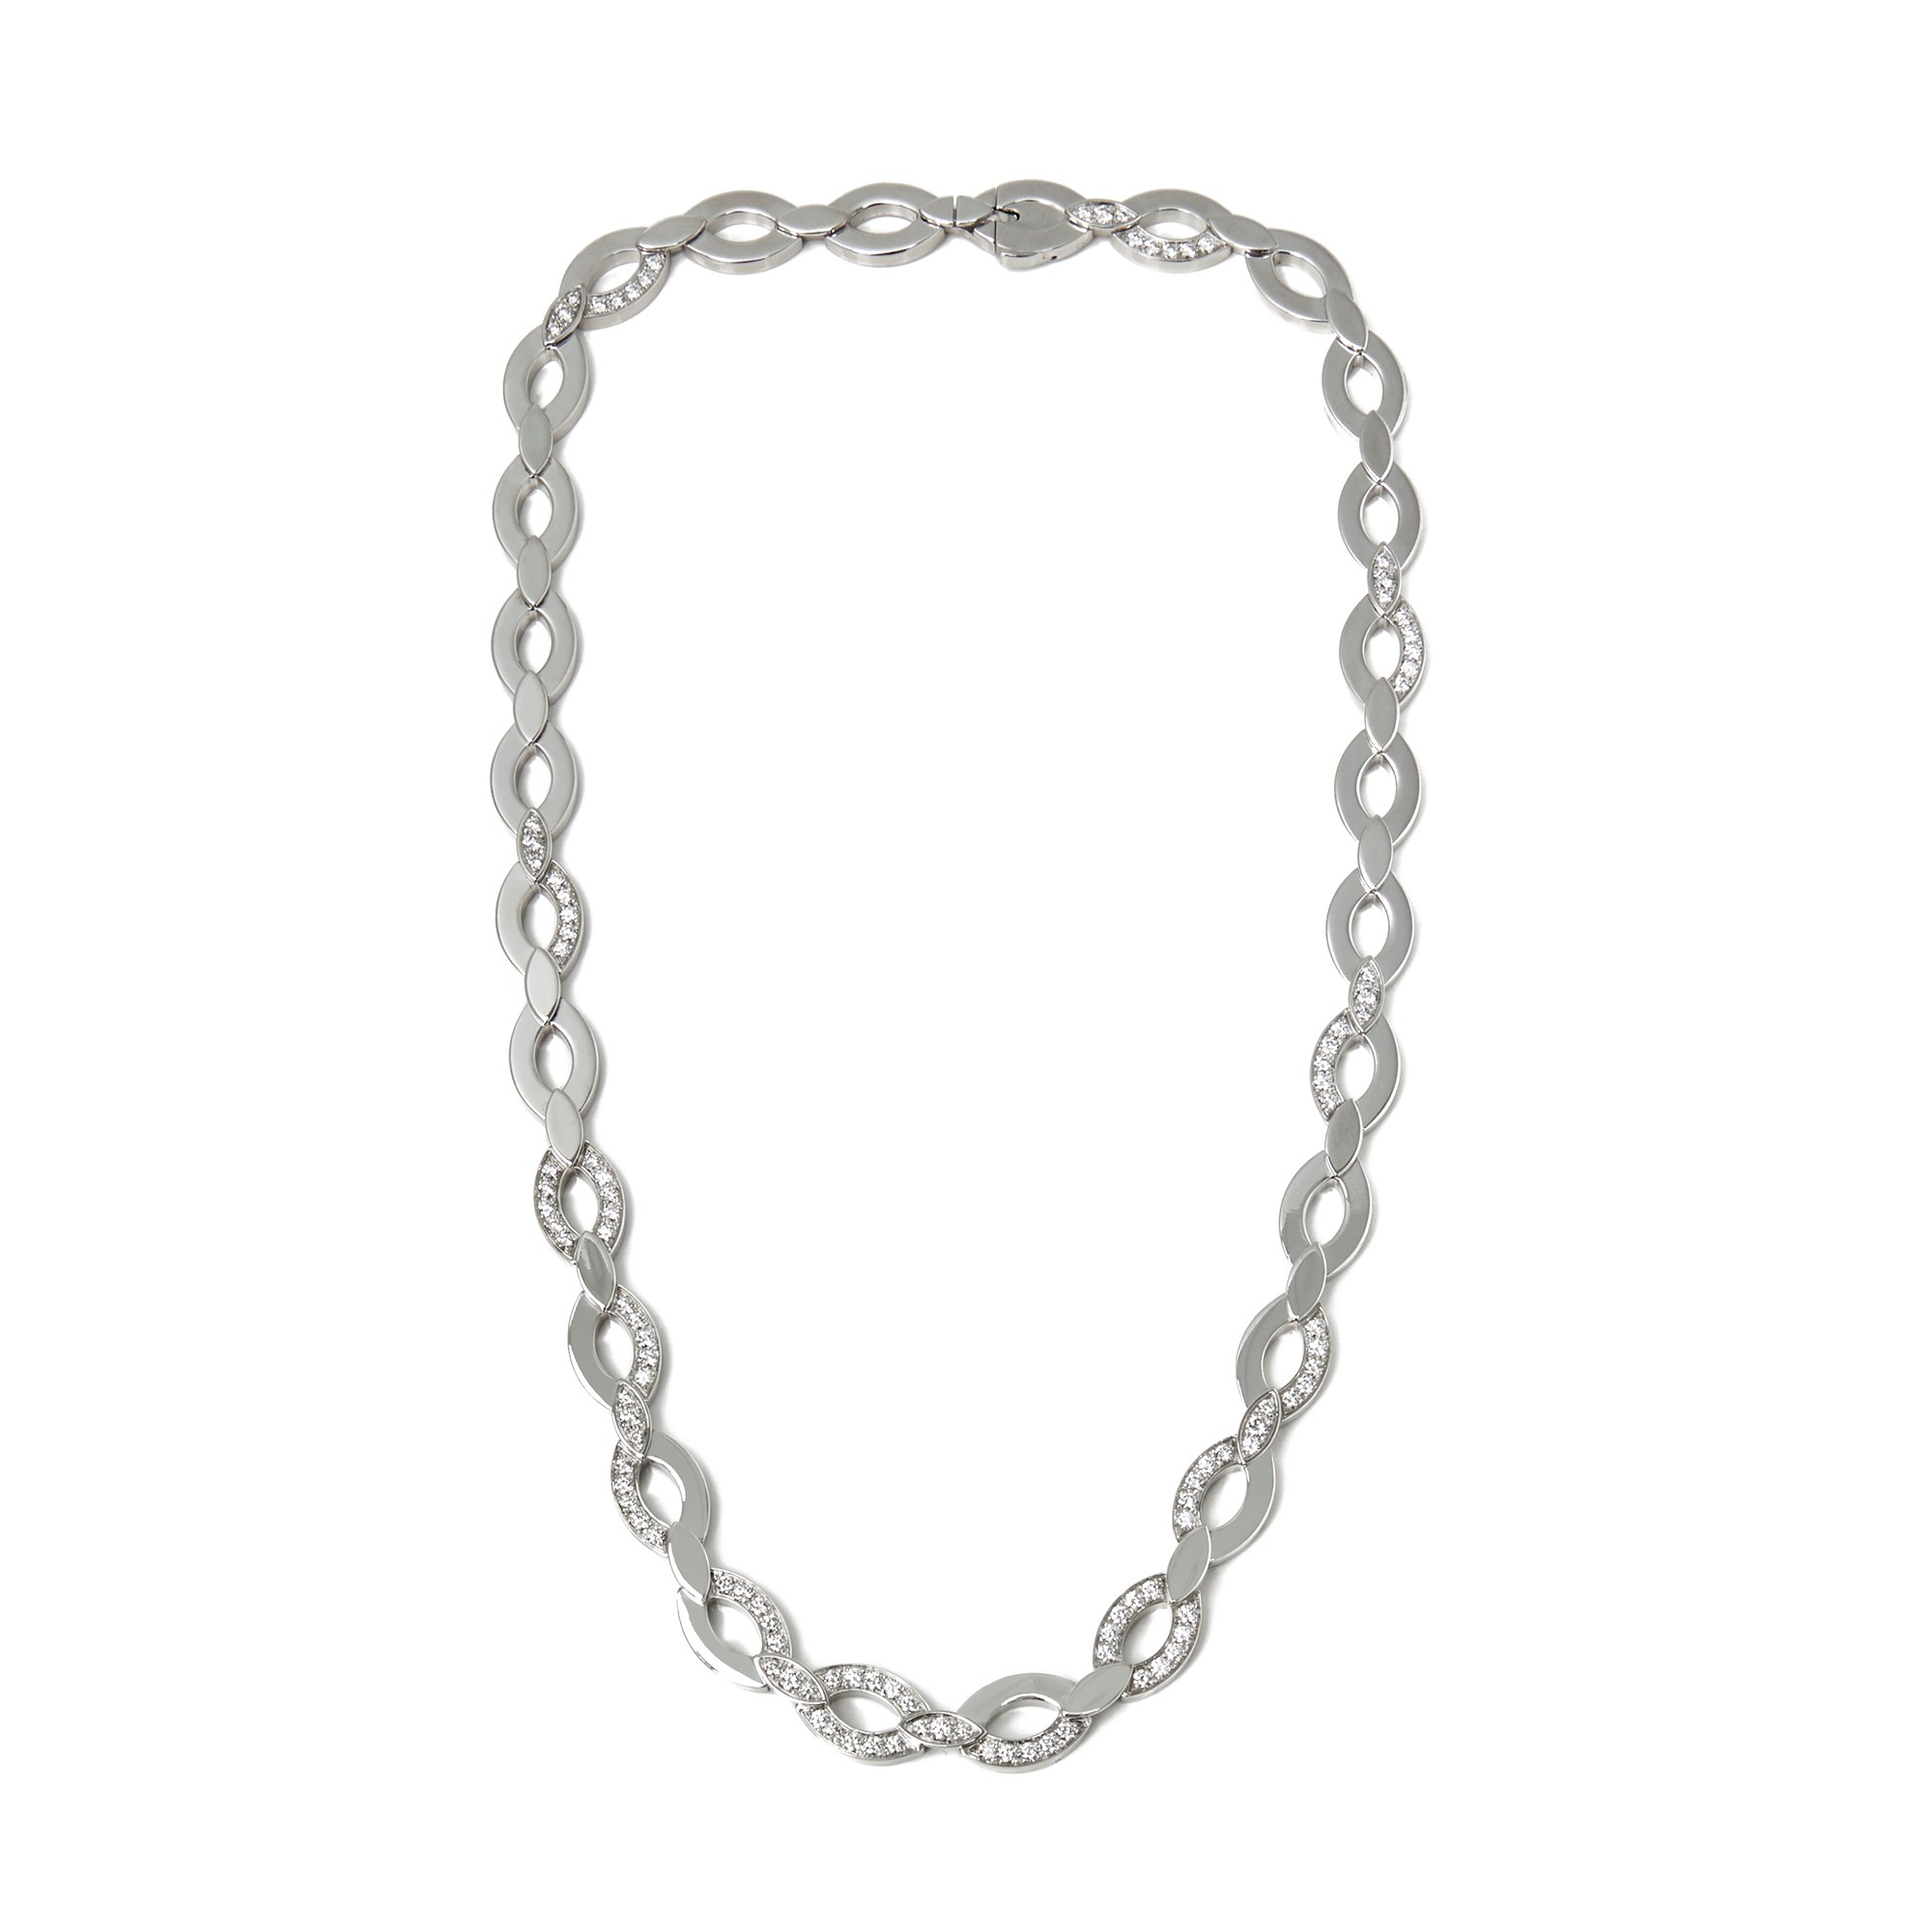 Cartier 18k White Gold Diamond Diadea Necklace